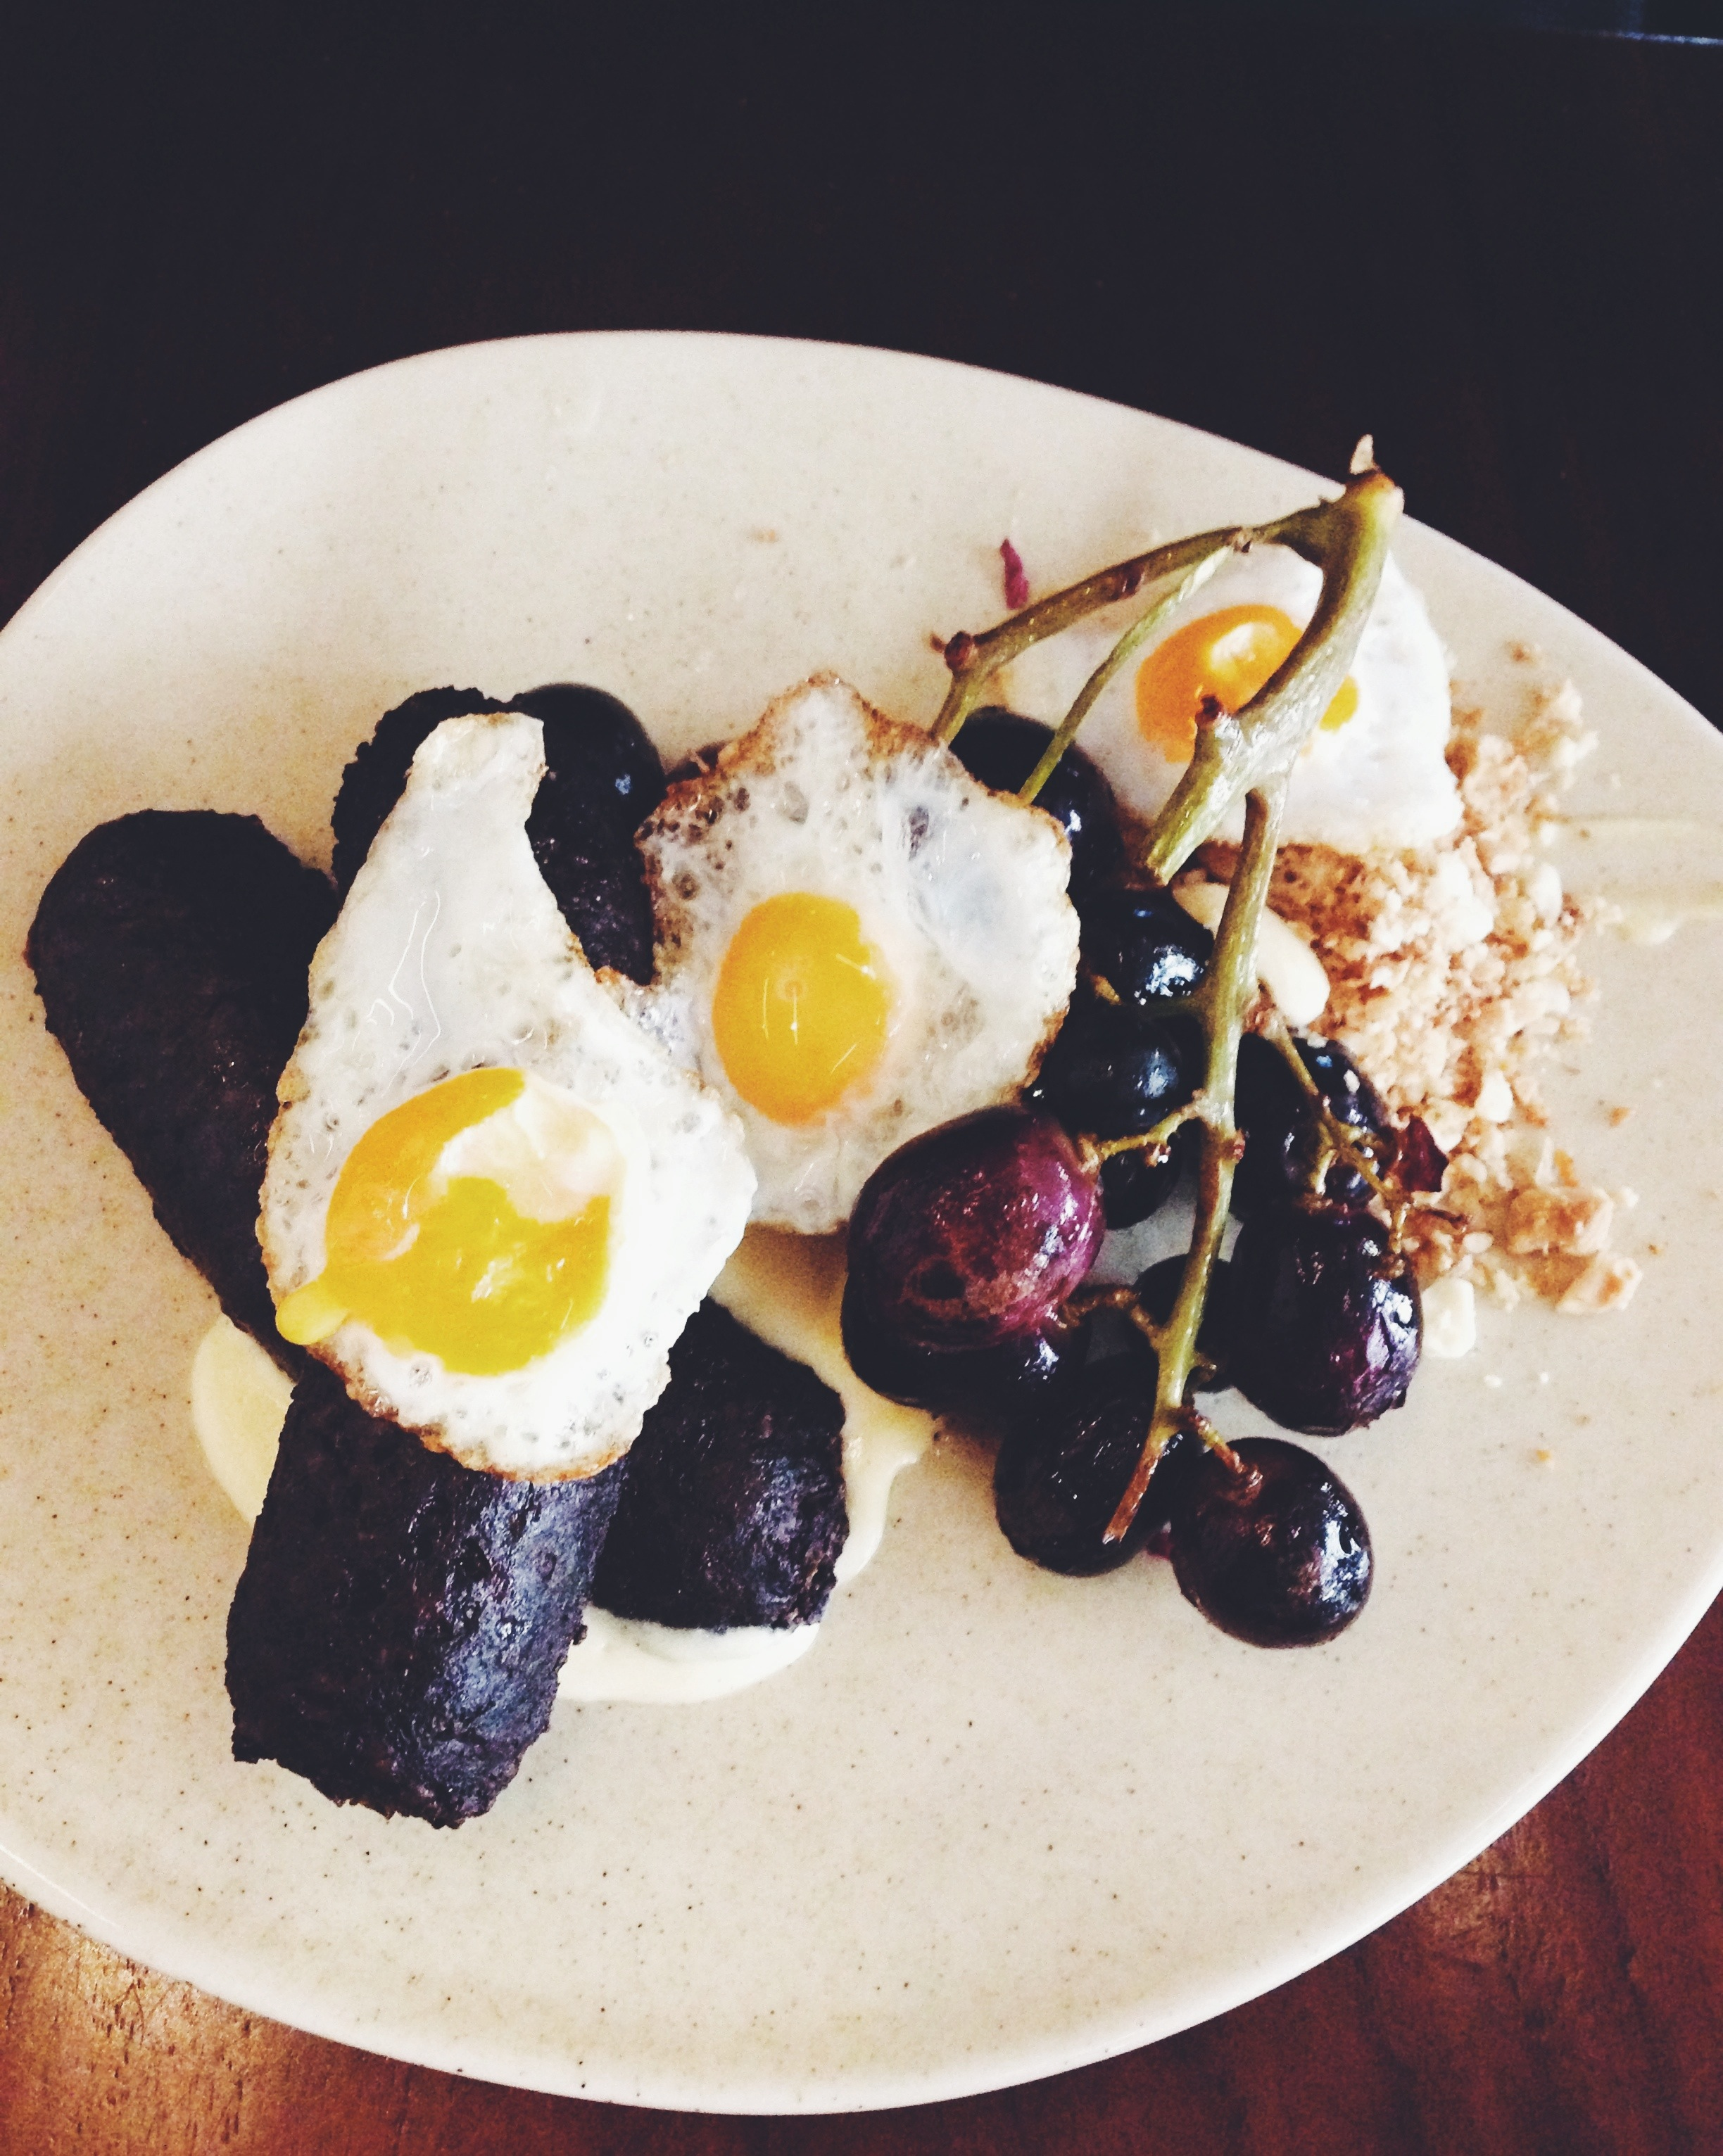 Black pudding, fried quail eggs, manchego custard, flamed currants, smoked almonds $19